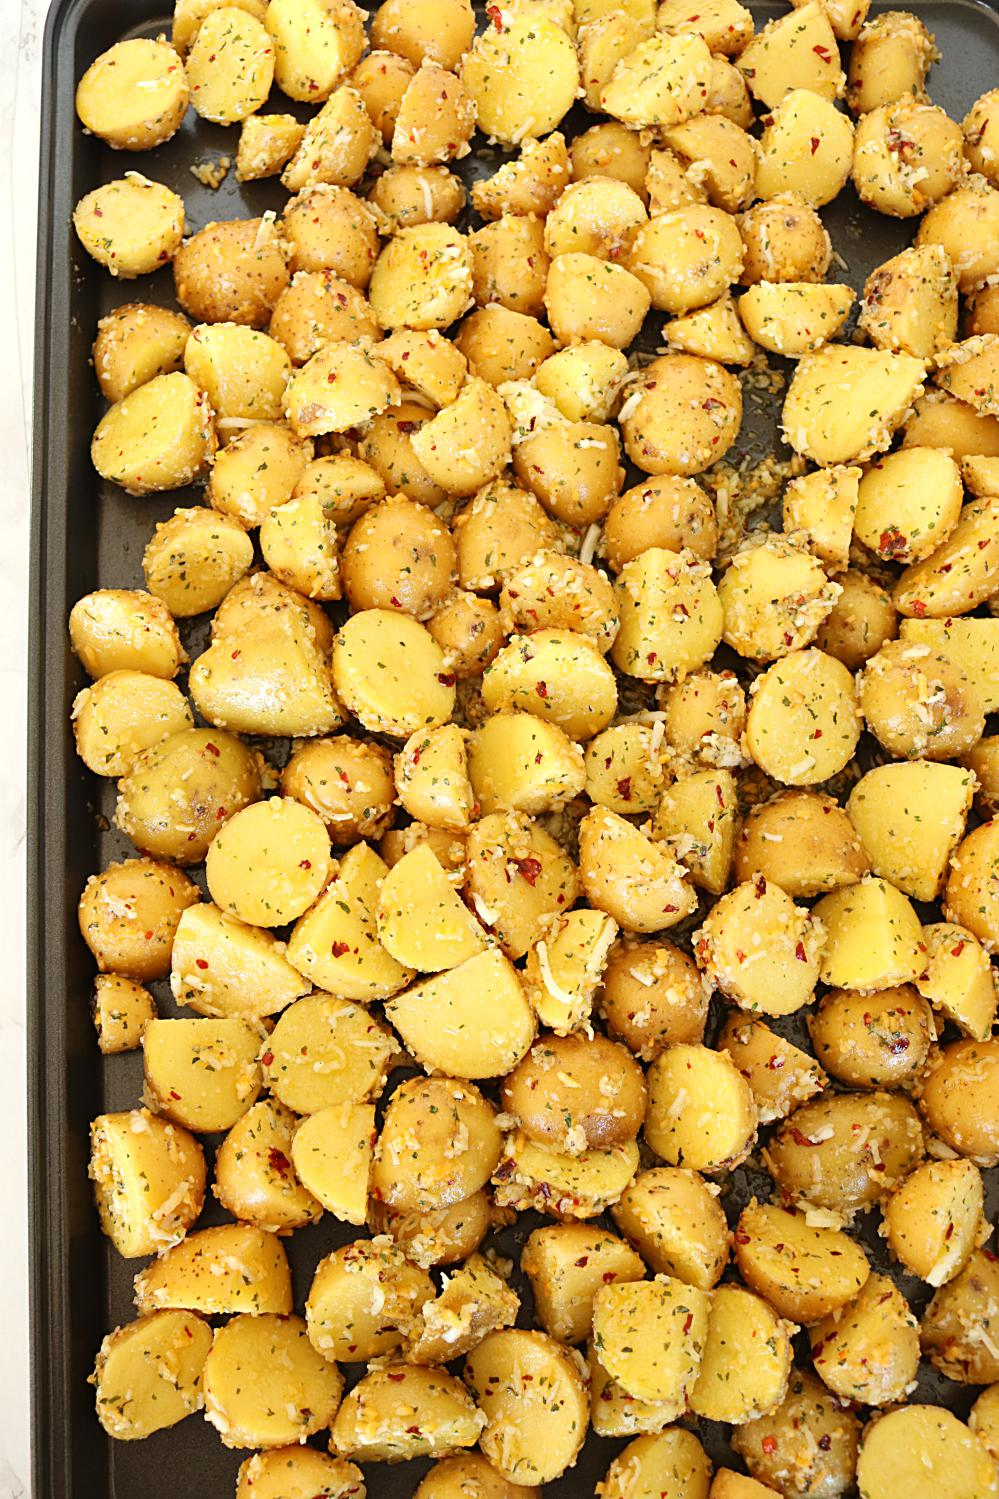 Oven Roasted Potatoes - Ruchiskitchen